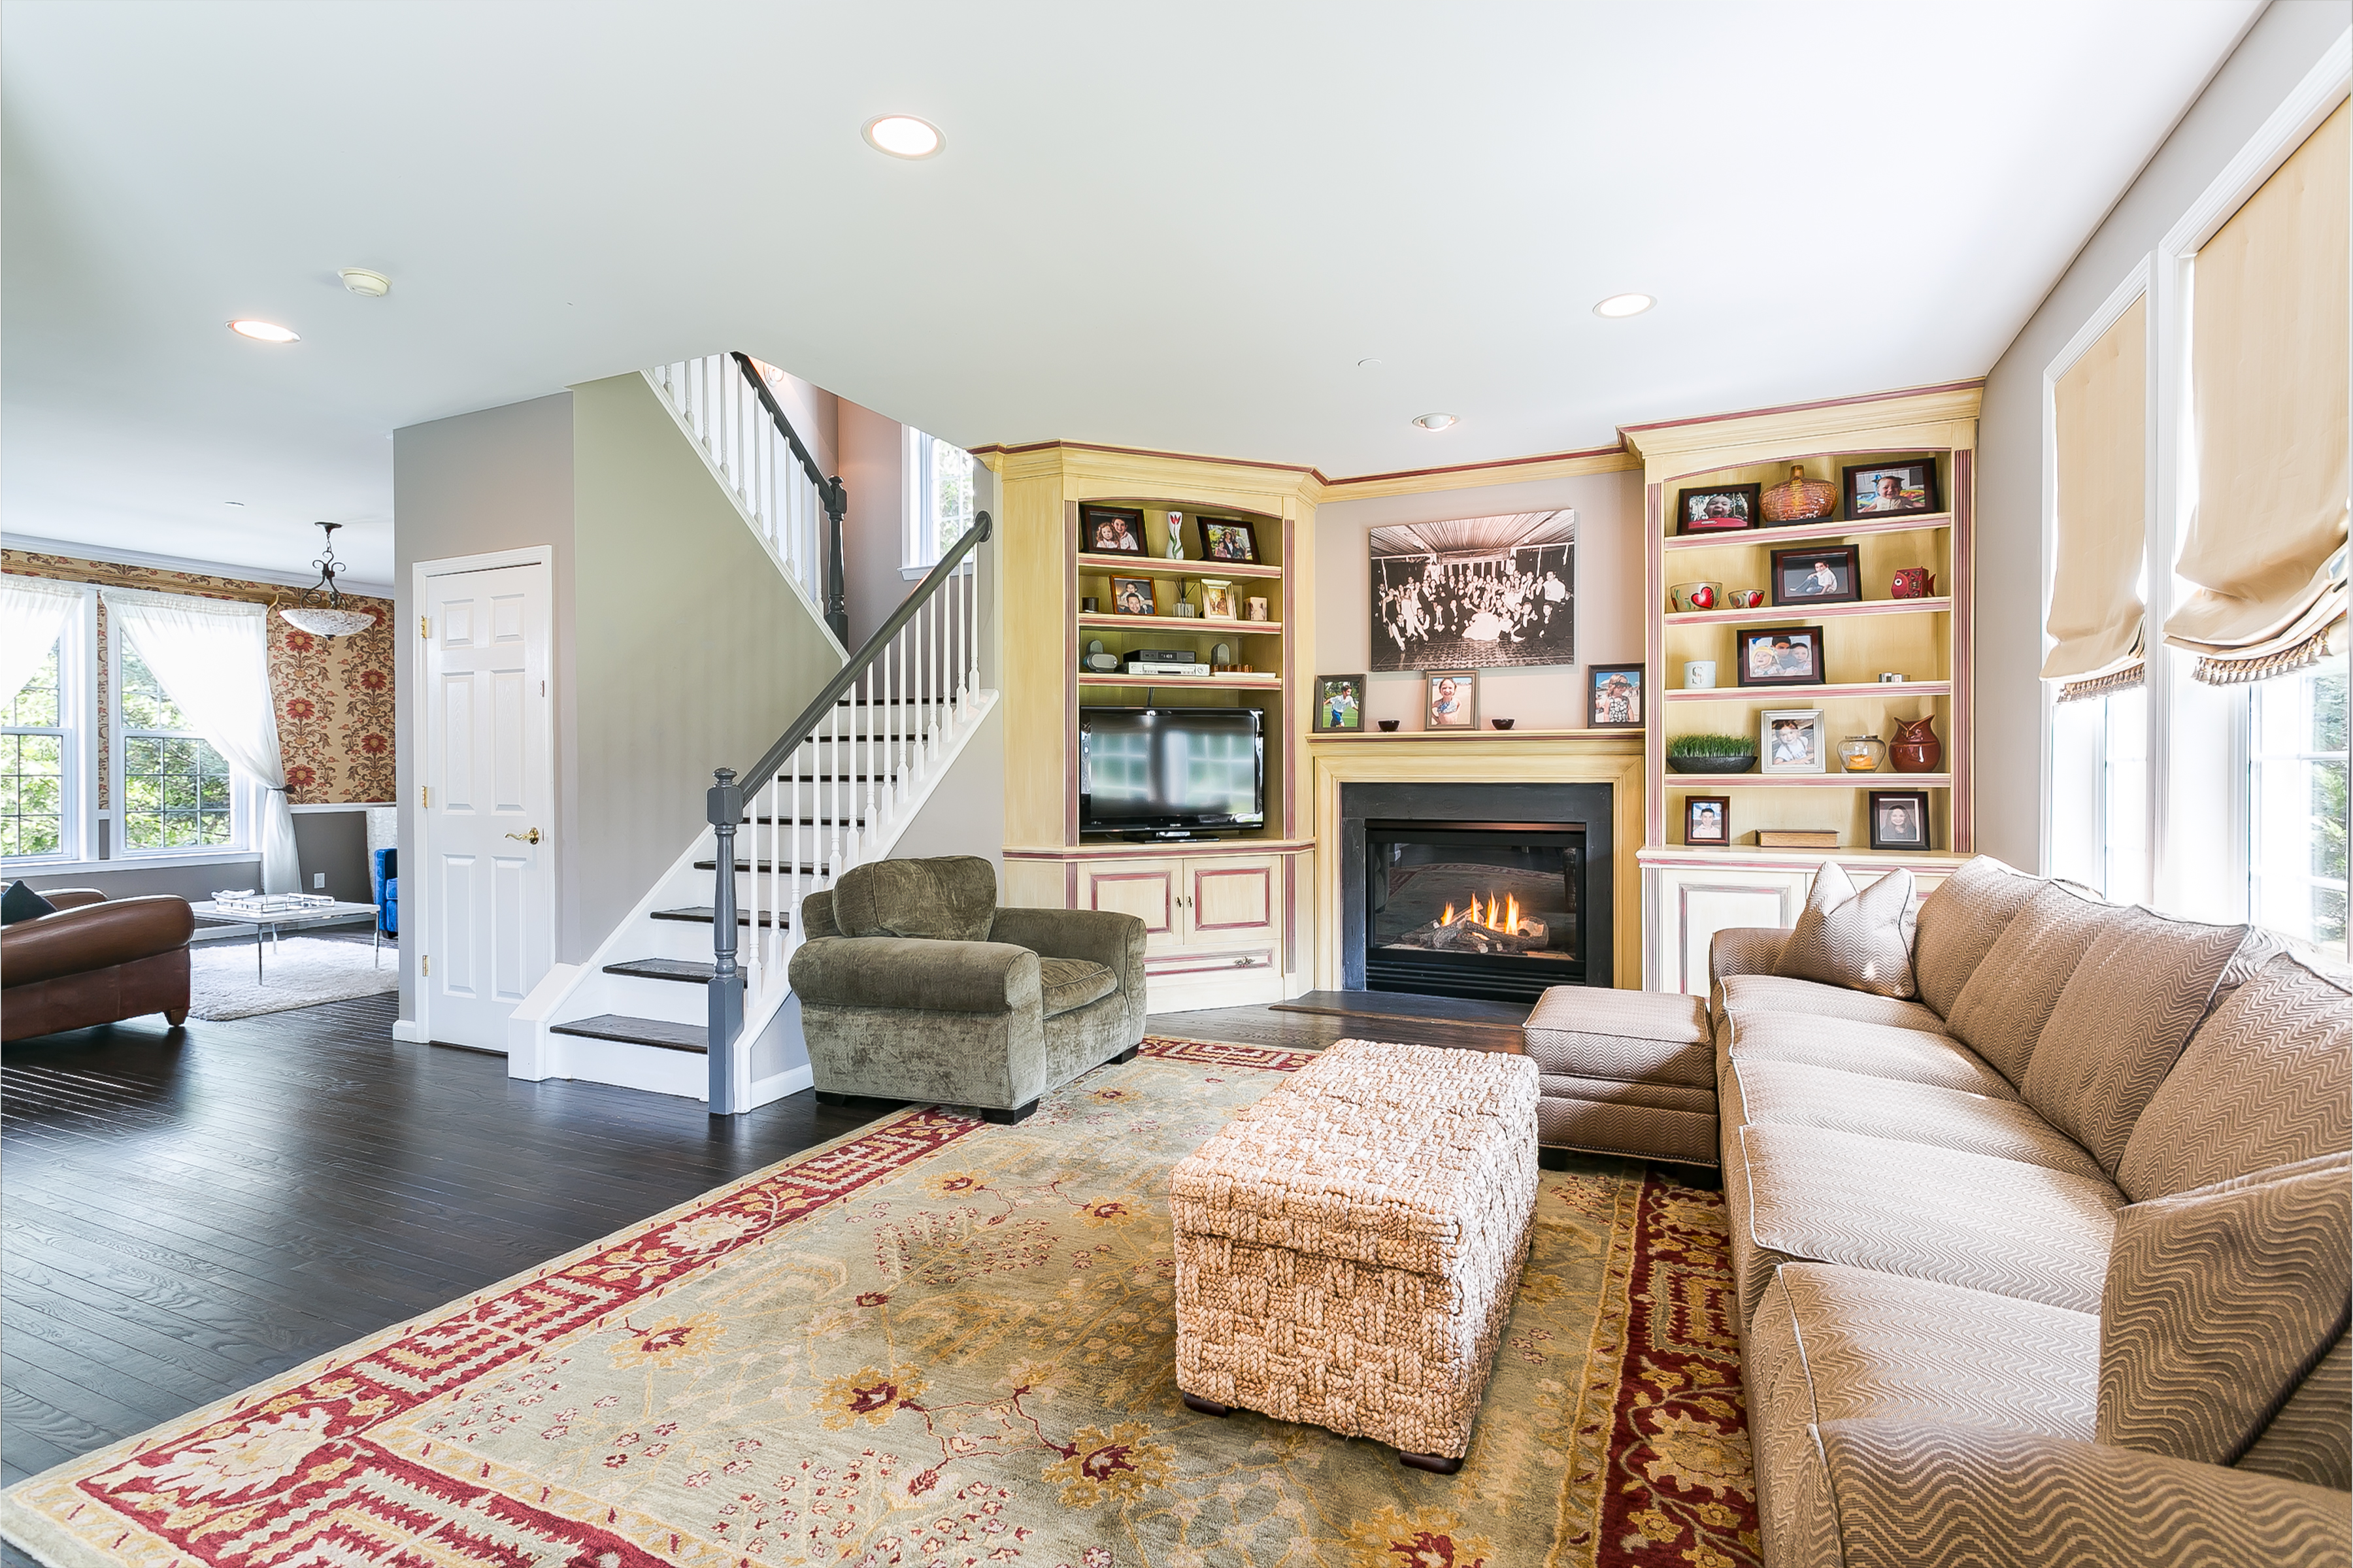 Single Family Home for Sale at 66 Bellefair Road Rye Brook, New York, 10573 United States